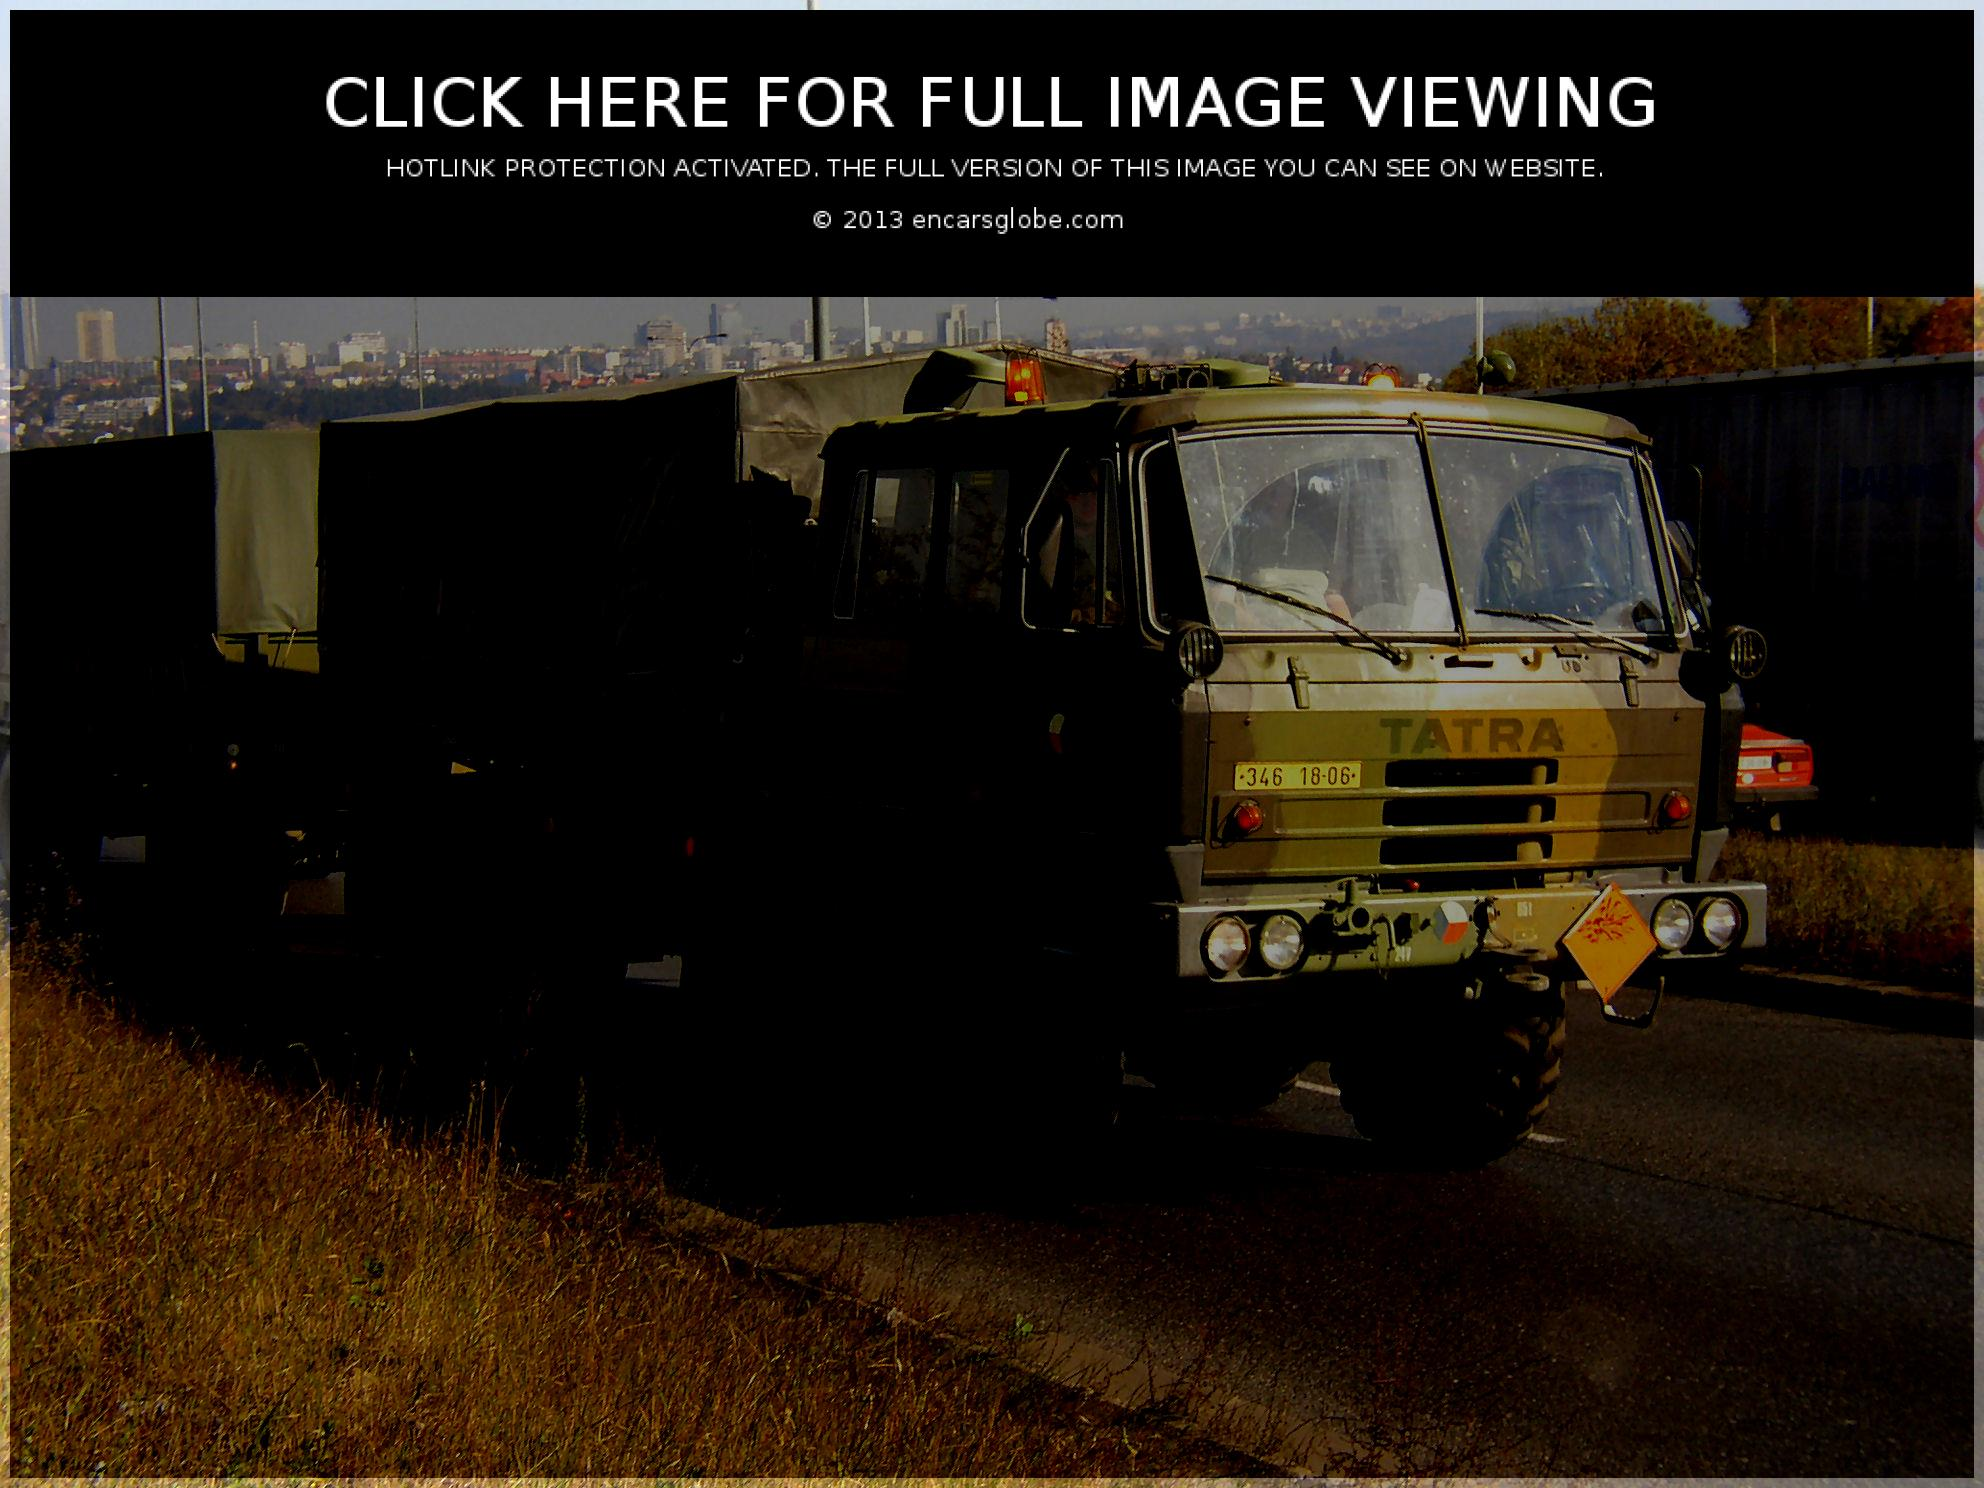 Tatra 815: Photo gallery, complete information about model ...